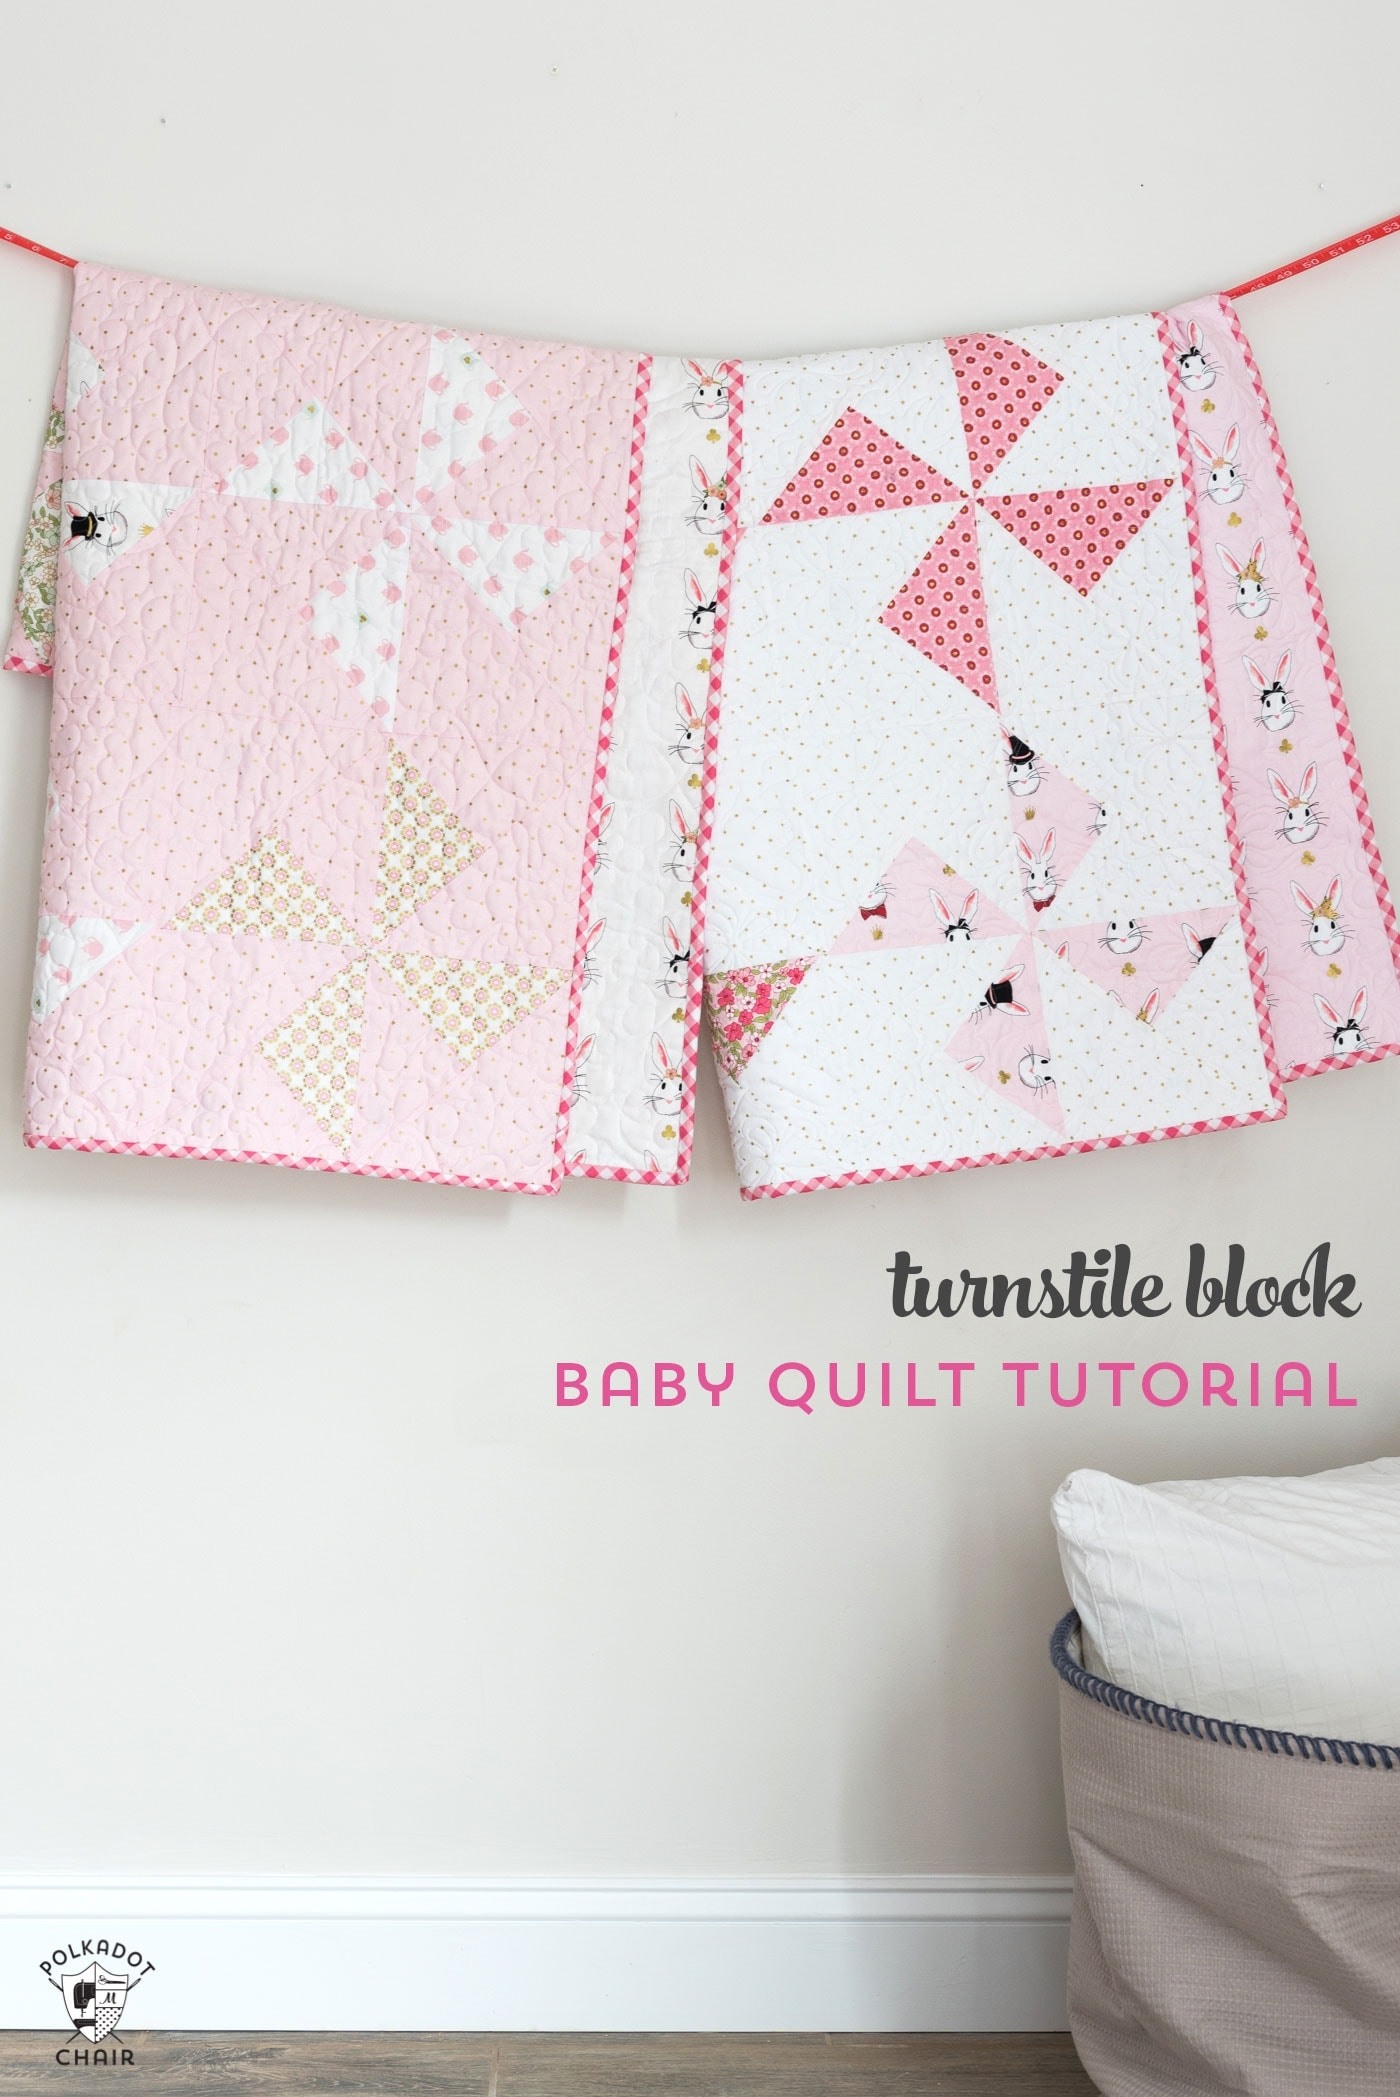 25 Baby Quilt Patterns The Polka Dot Chair